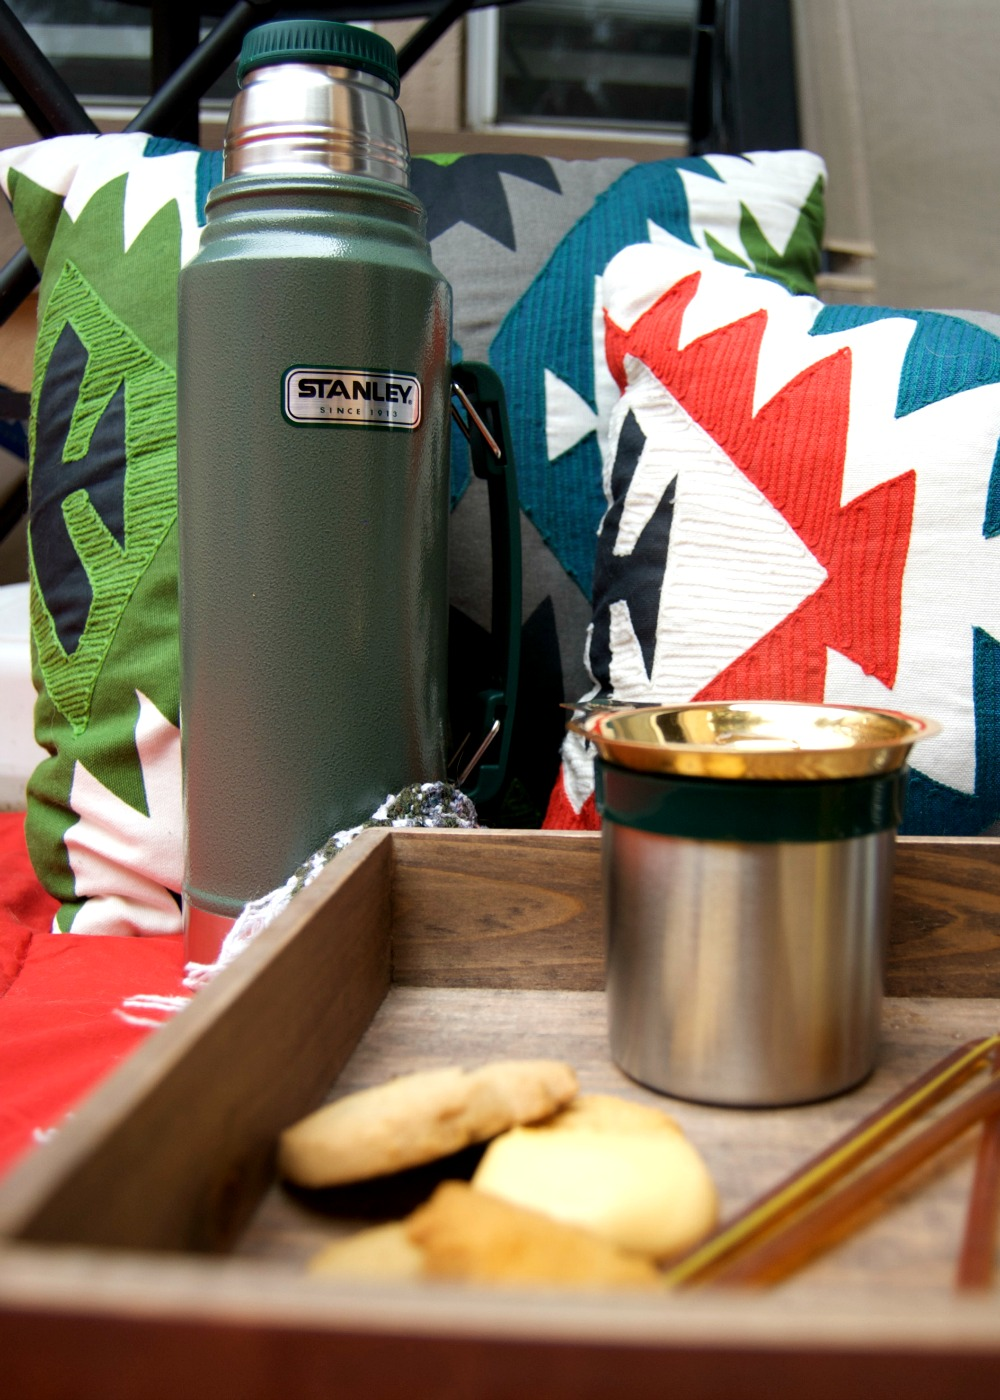 Stanley Classic Vacuum Bottle to Keep Hot Beverages Hot for Your Parties - Campfire Chic